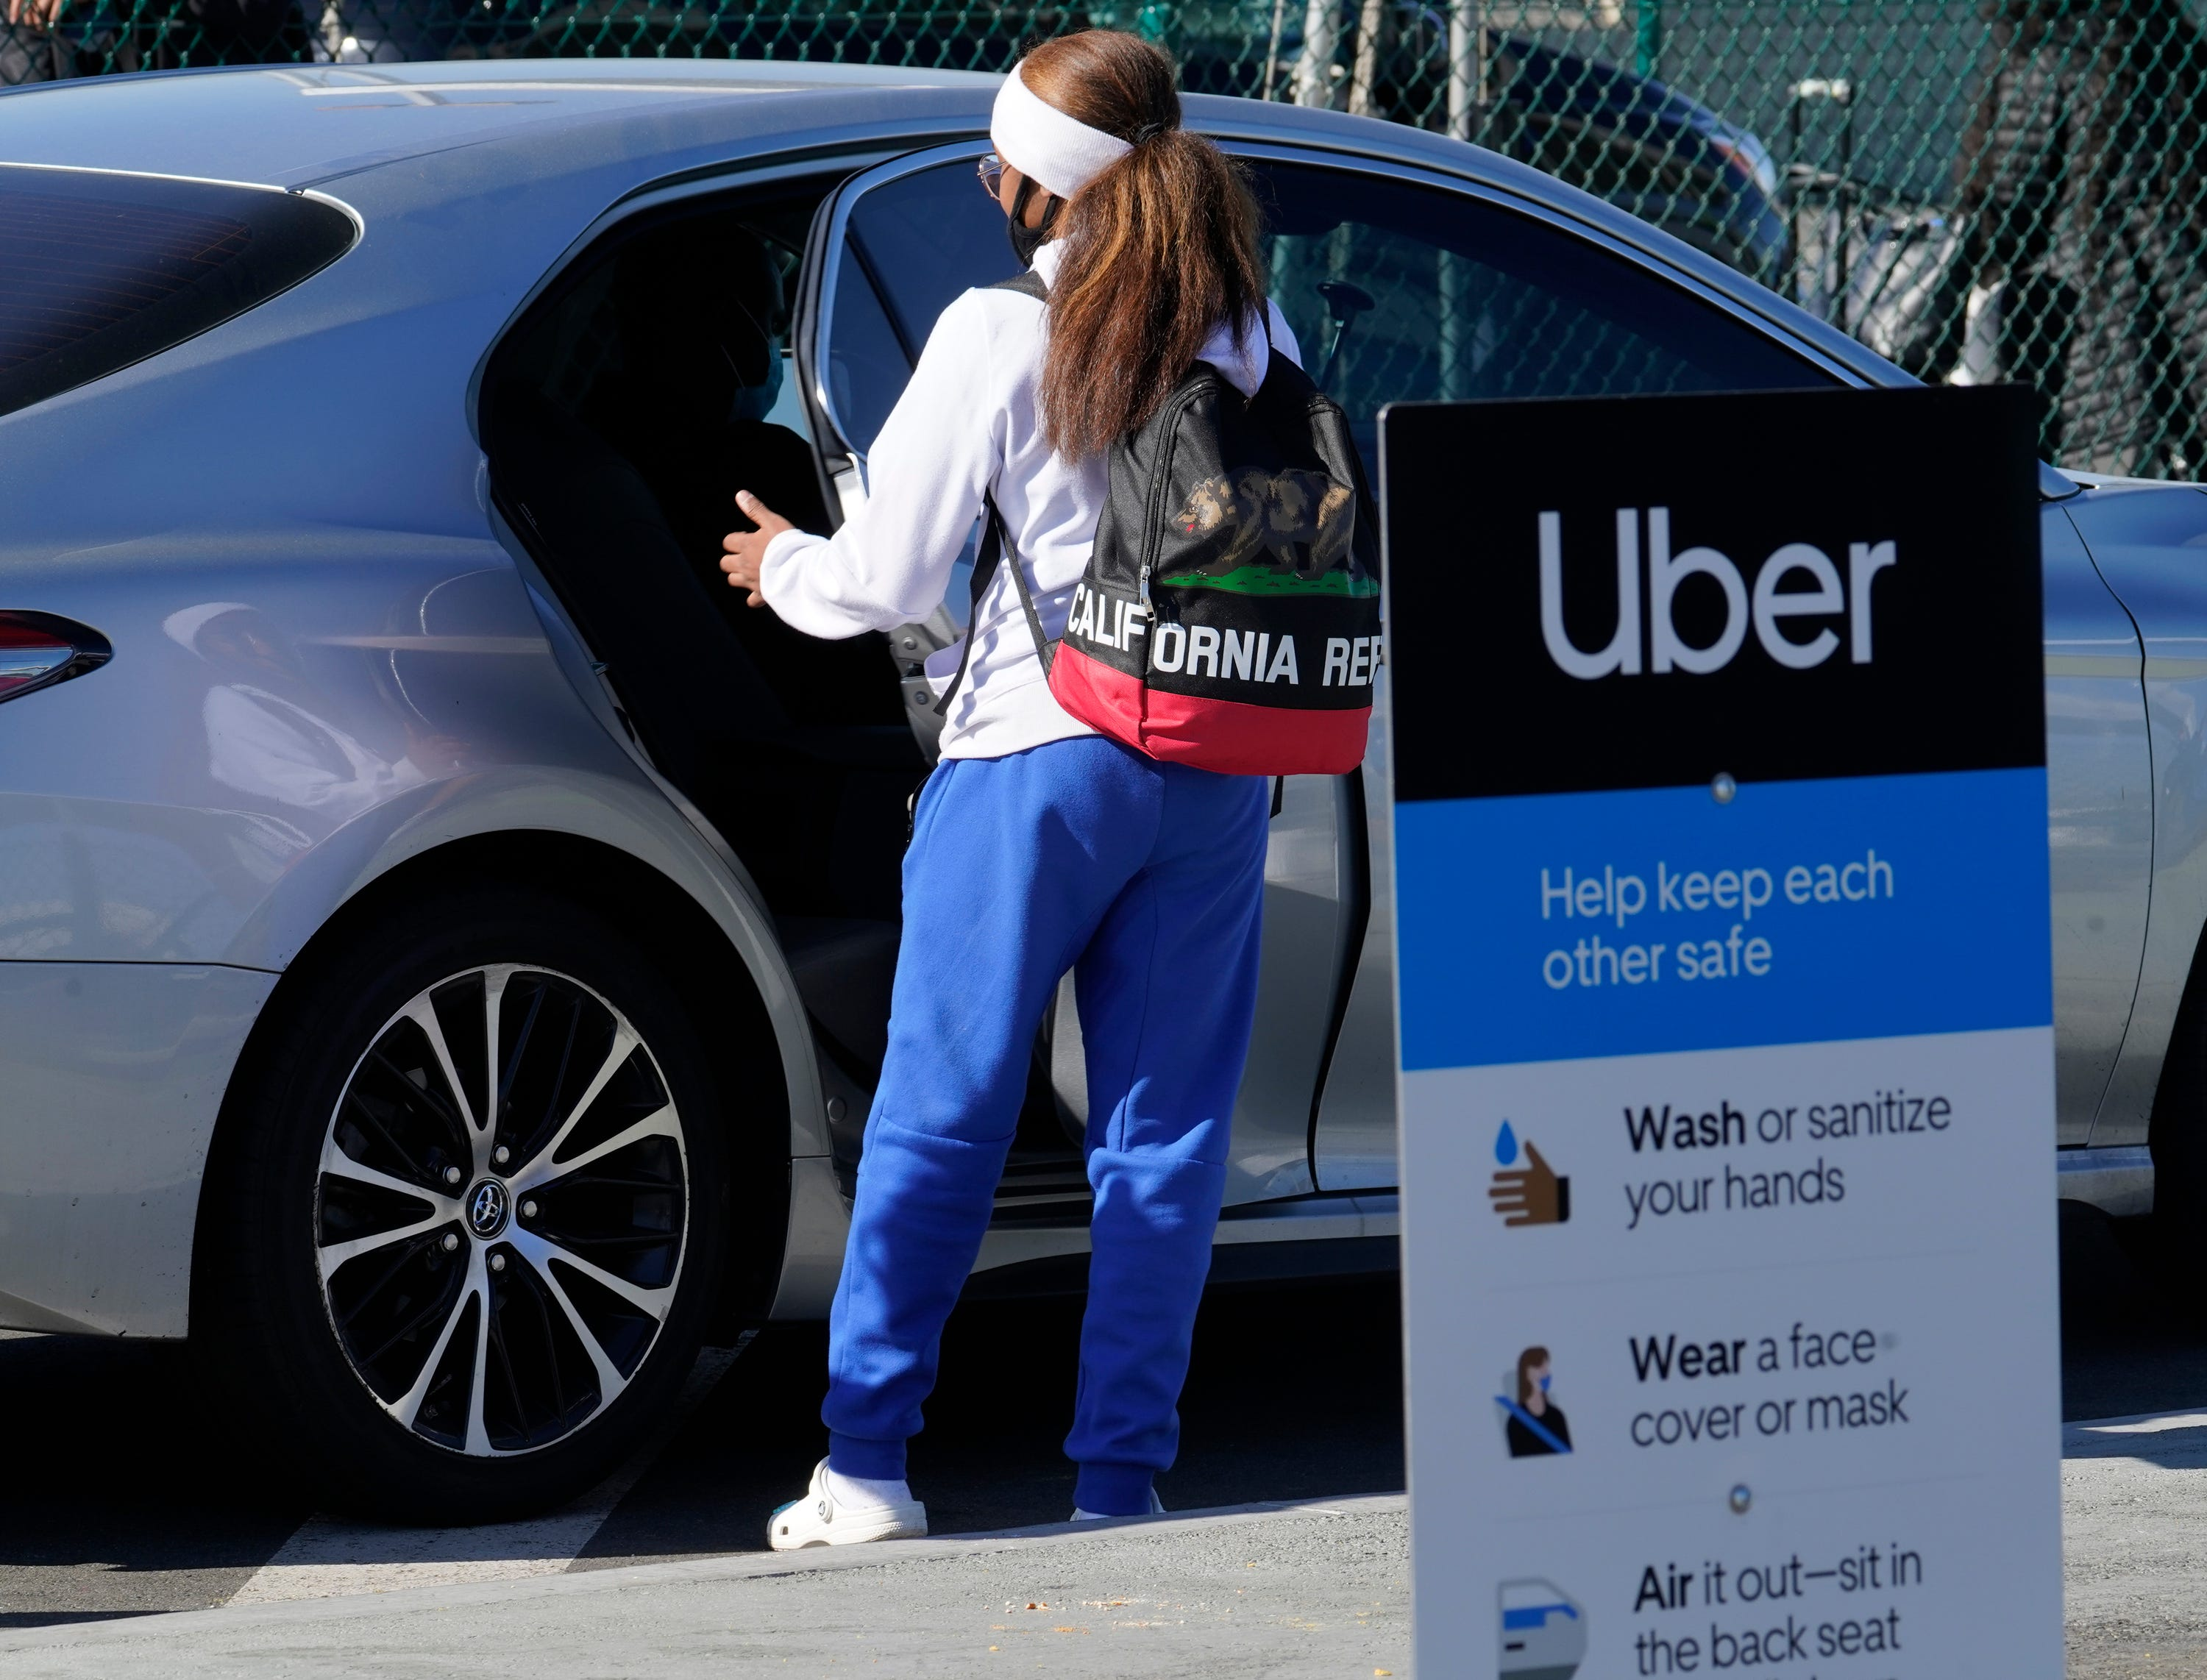 'I marinated in Fort Lauderdale for 45 minutes': Uber, Lyft shortages leave travelers frustrated and waiting